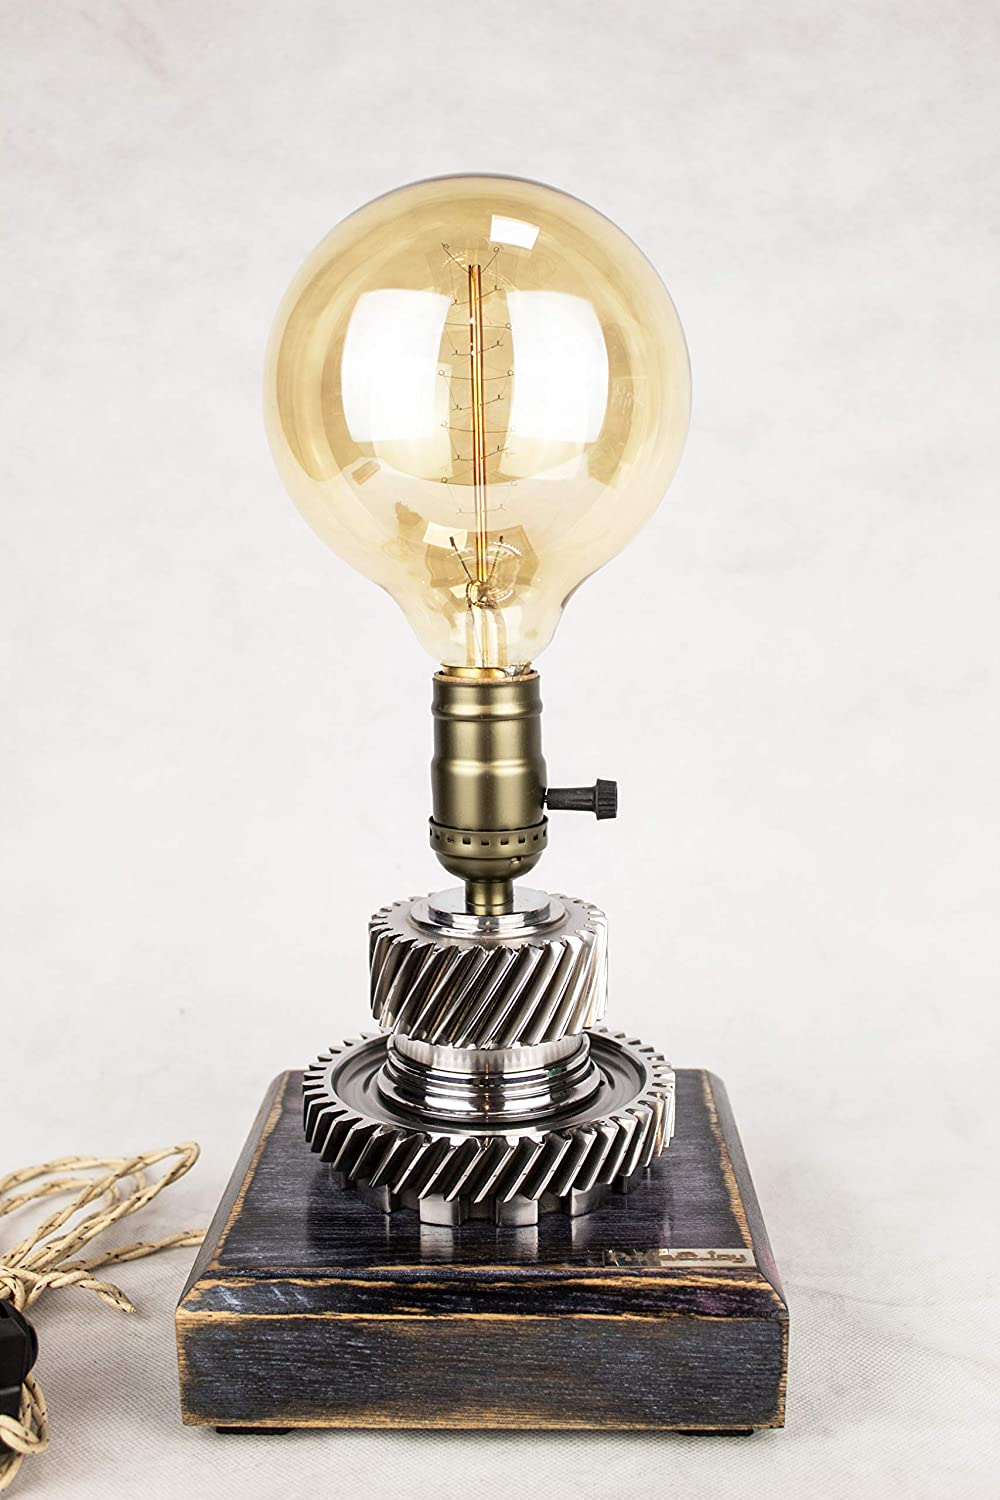 Cash special price Industrial Animer and price revision Table Lamp PrideJoy steampunk Gift part for lamp car